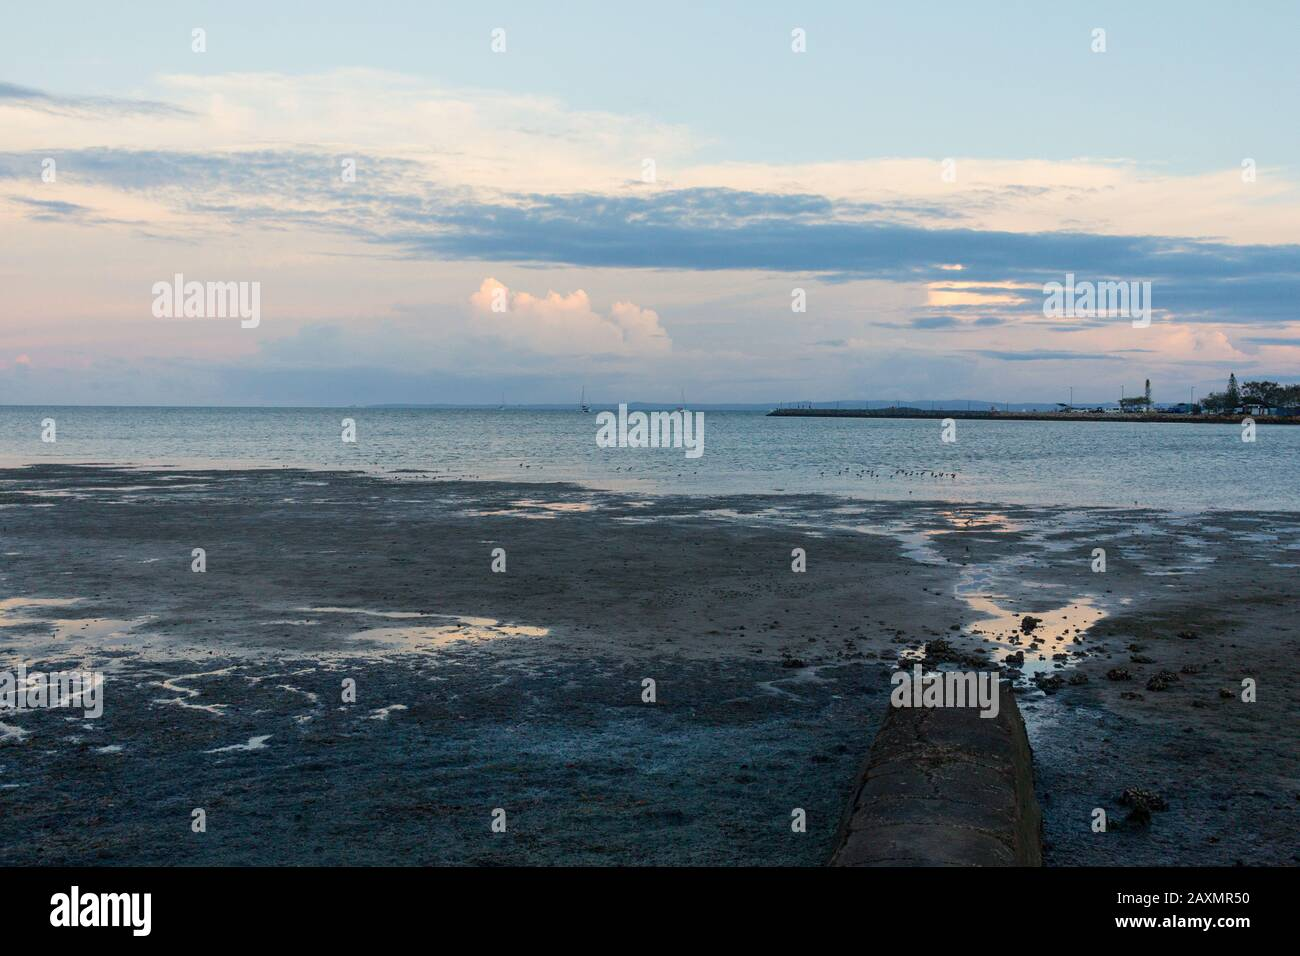 Scenic view of sea against dramatic sky during sunset Stock Photo